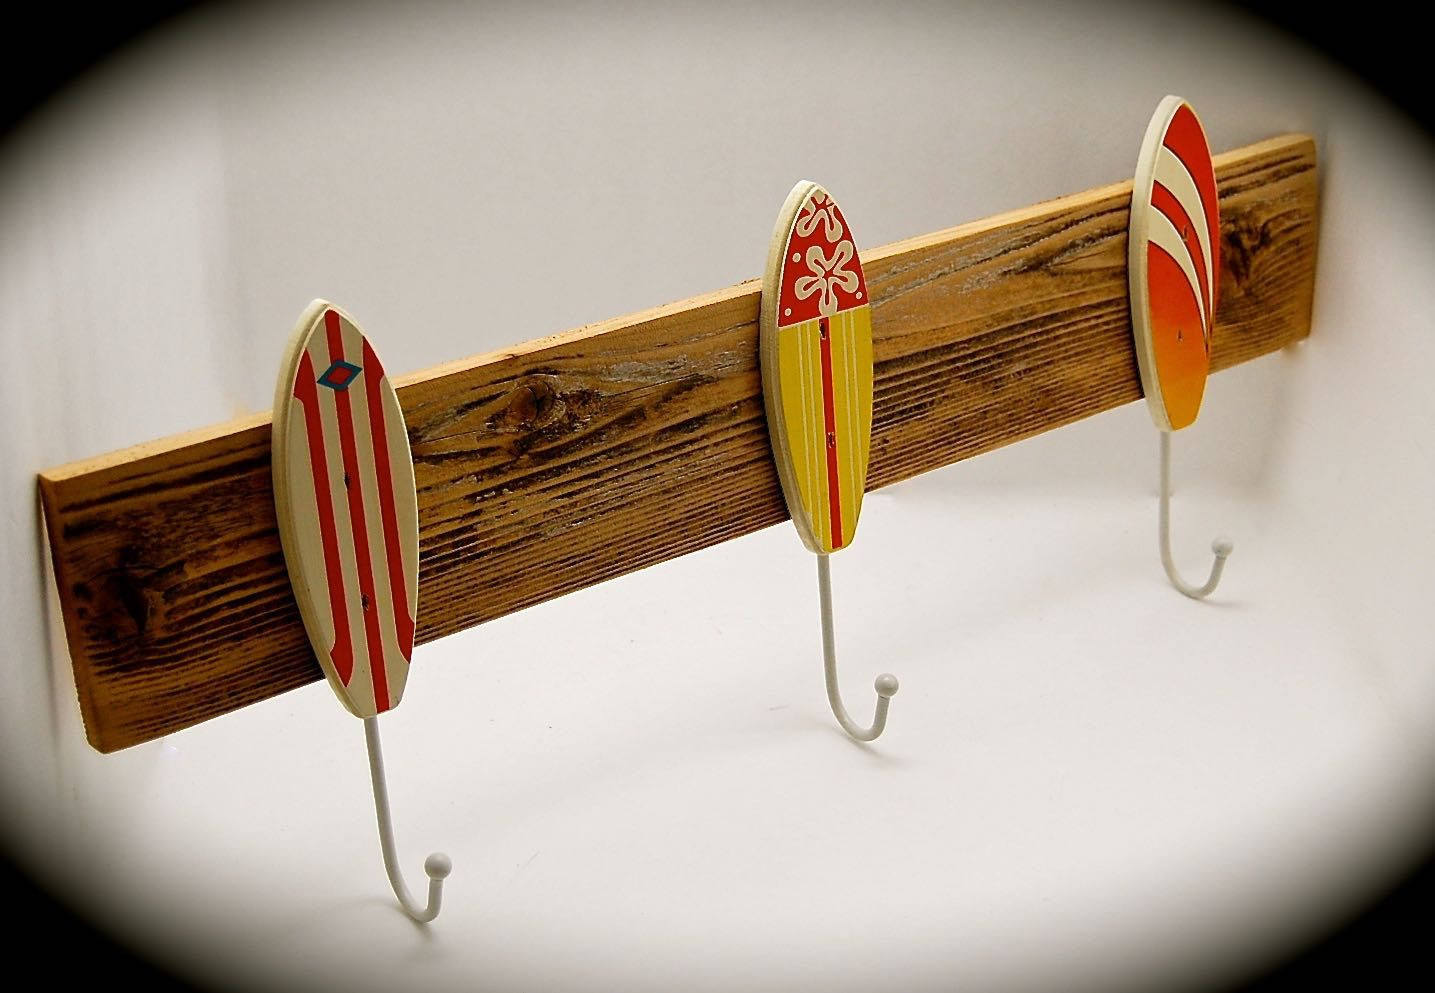 "Surfboard Hat Rack- Surfboard Coat Rack- Surfboard Key Rack- BeachDazzled Organizer Handmade with Reclaimed Cedar 2 Ft. Long 9"" high. by BeachDazzled on Etsy"